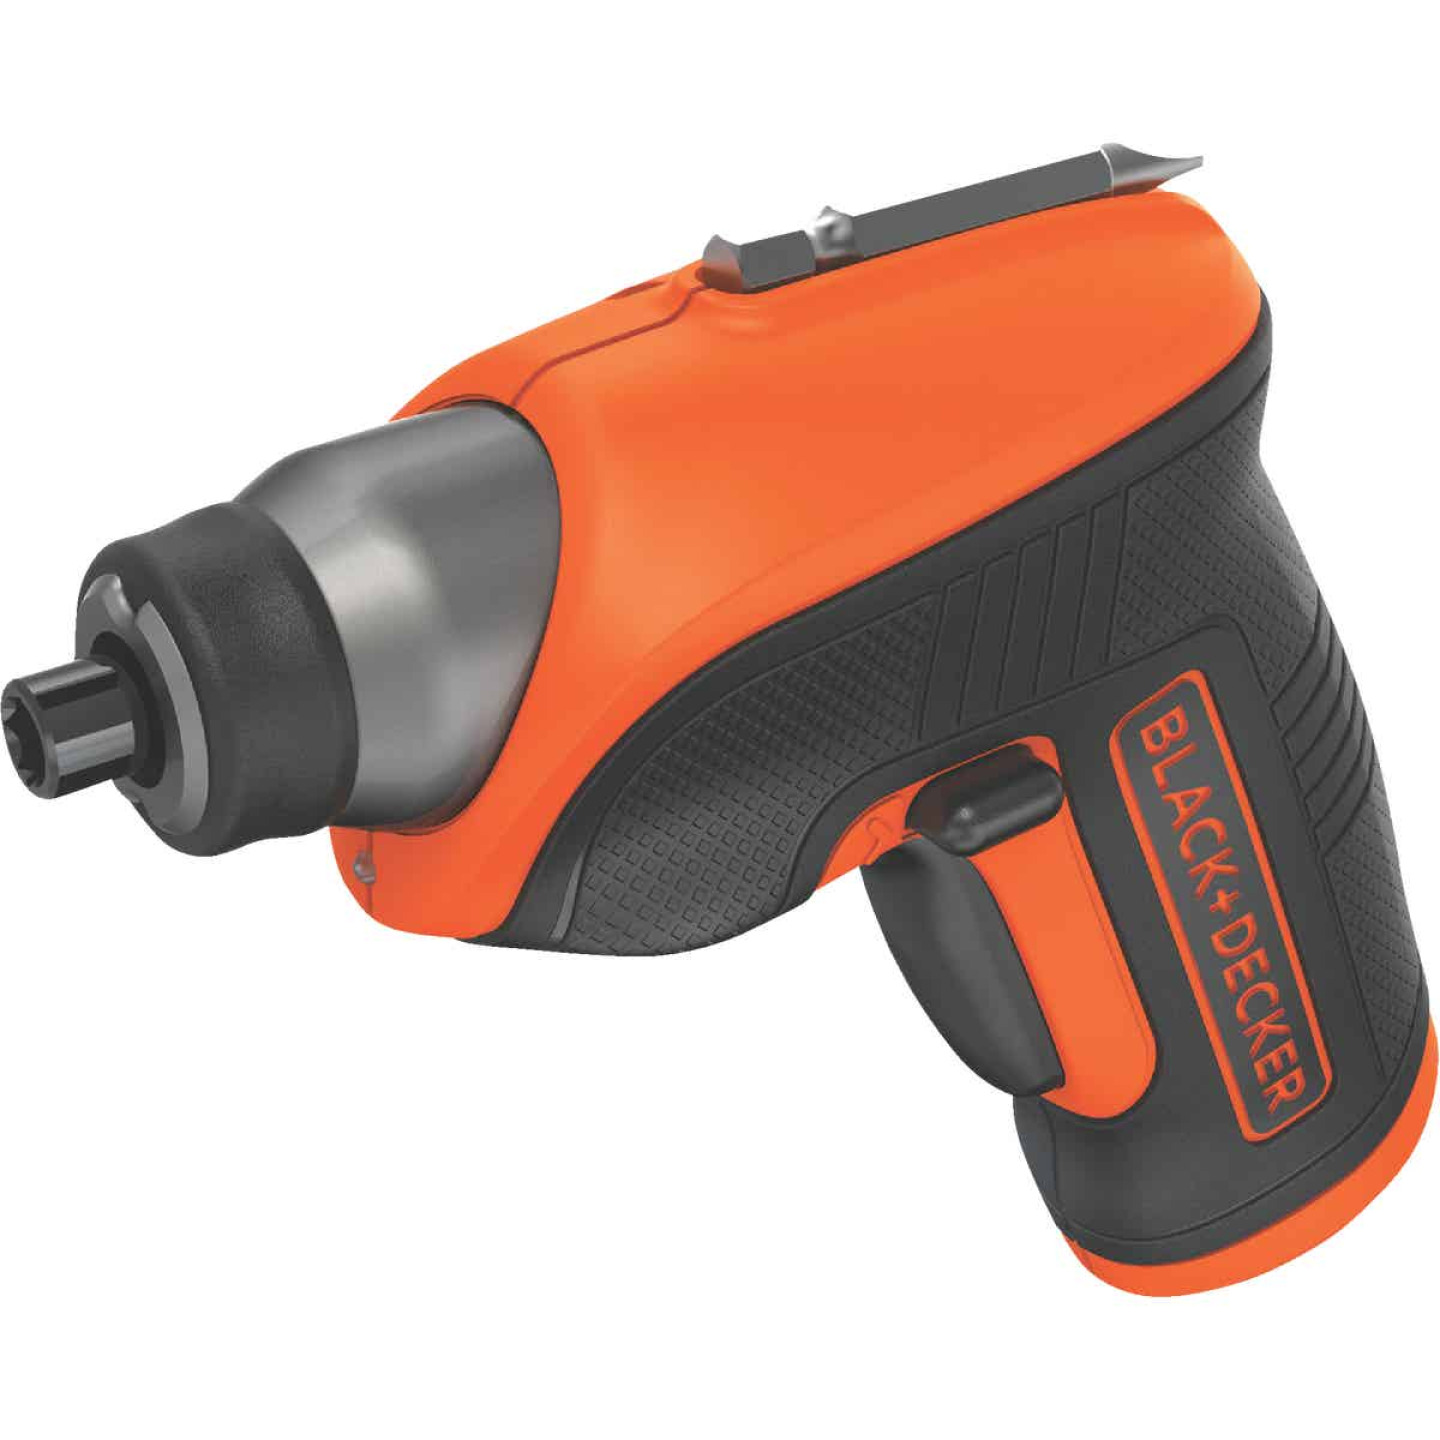 Black & Decker 4 Volt MAX Lithium-Ion 3/8 In. Cordless Screwdriver Kit Image 1